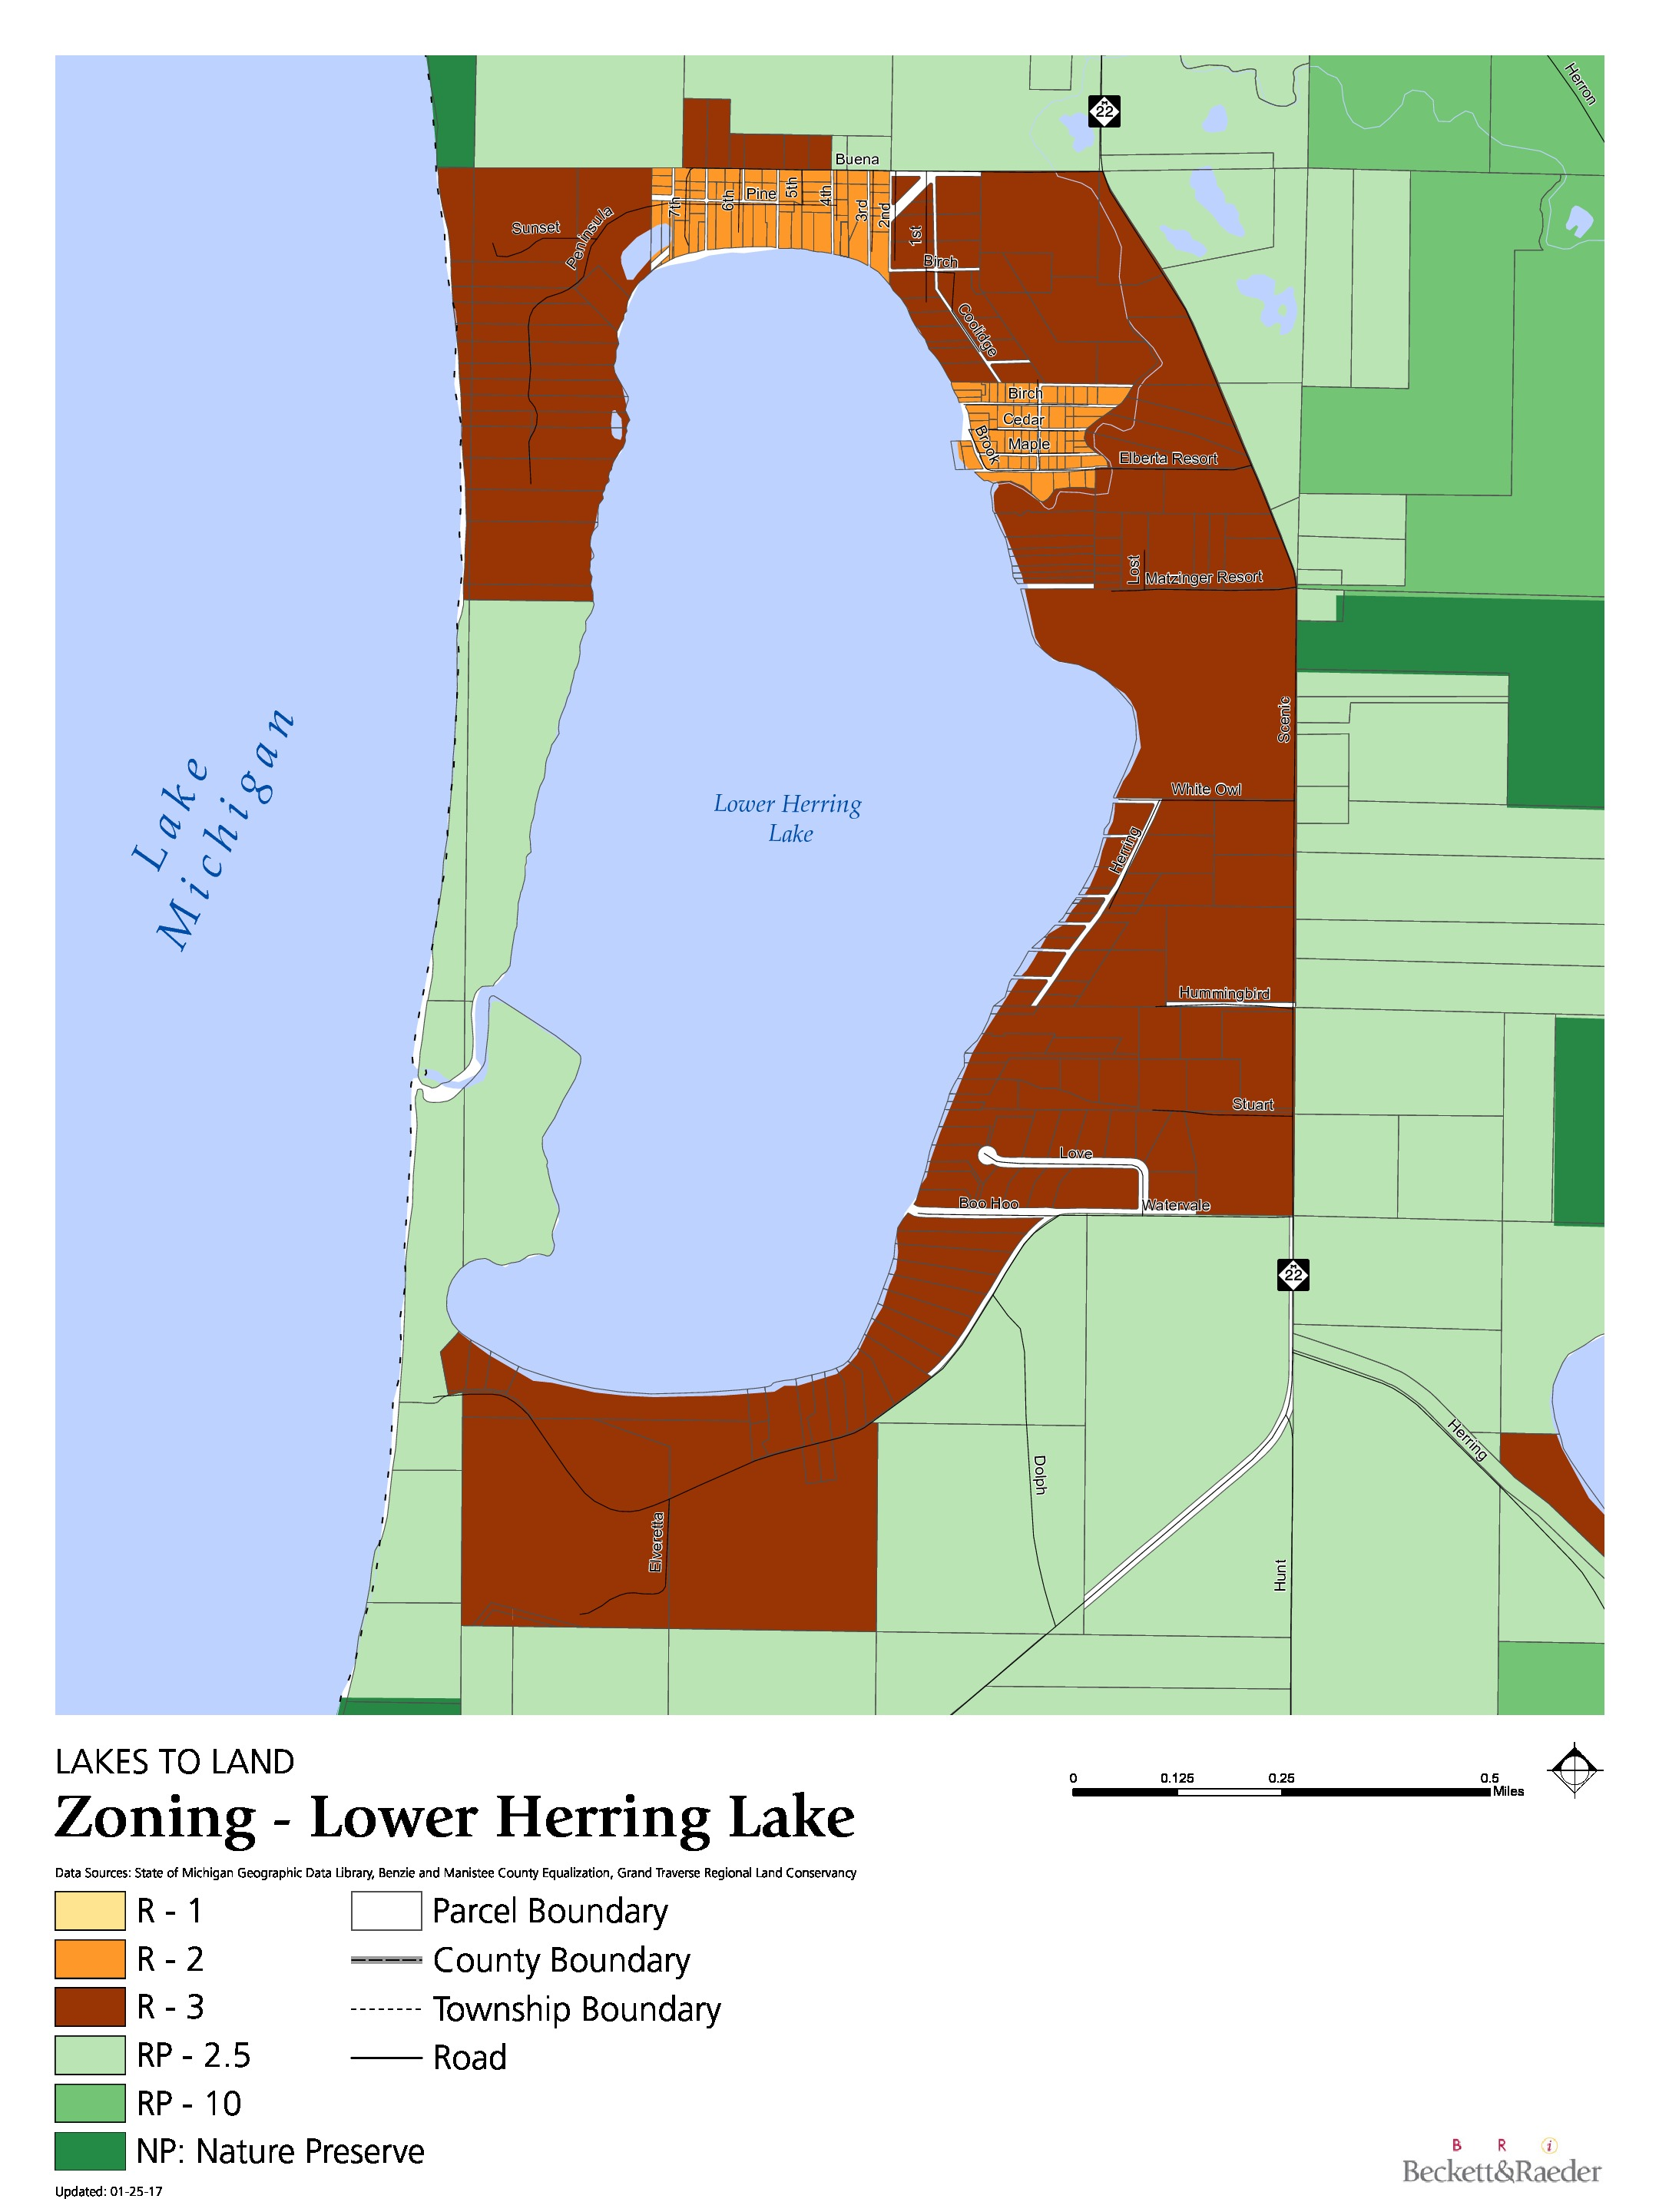 Zoning - Lower Herring Lake